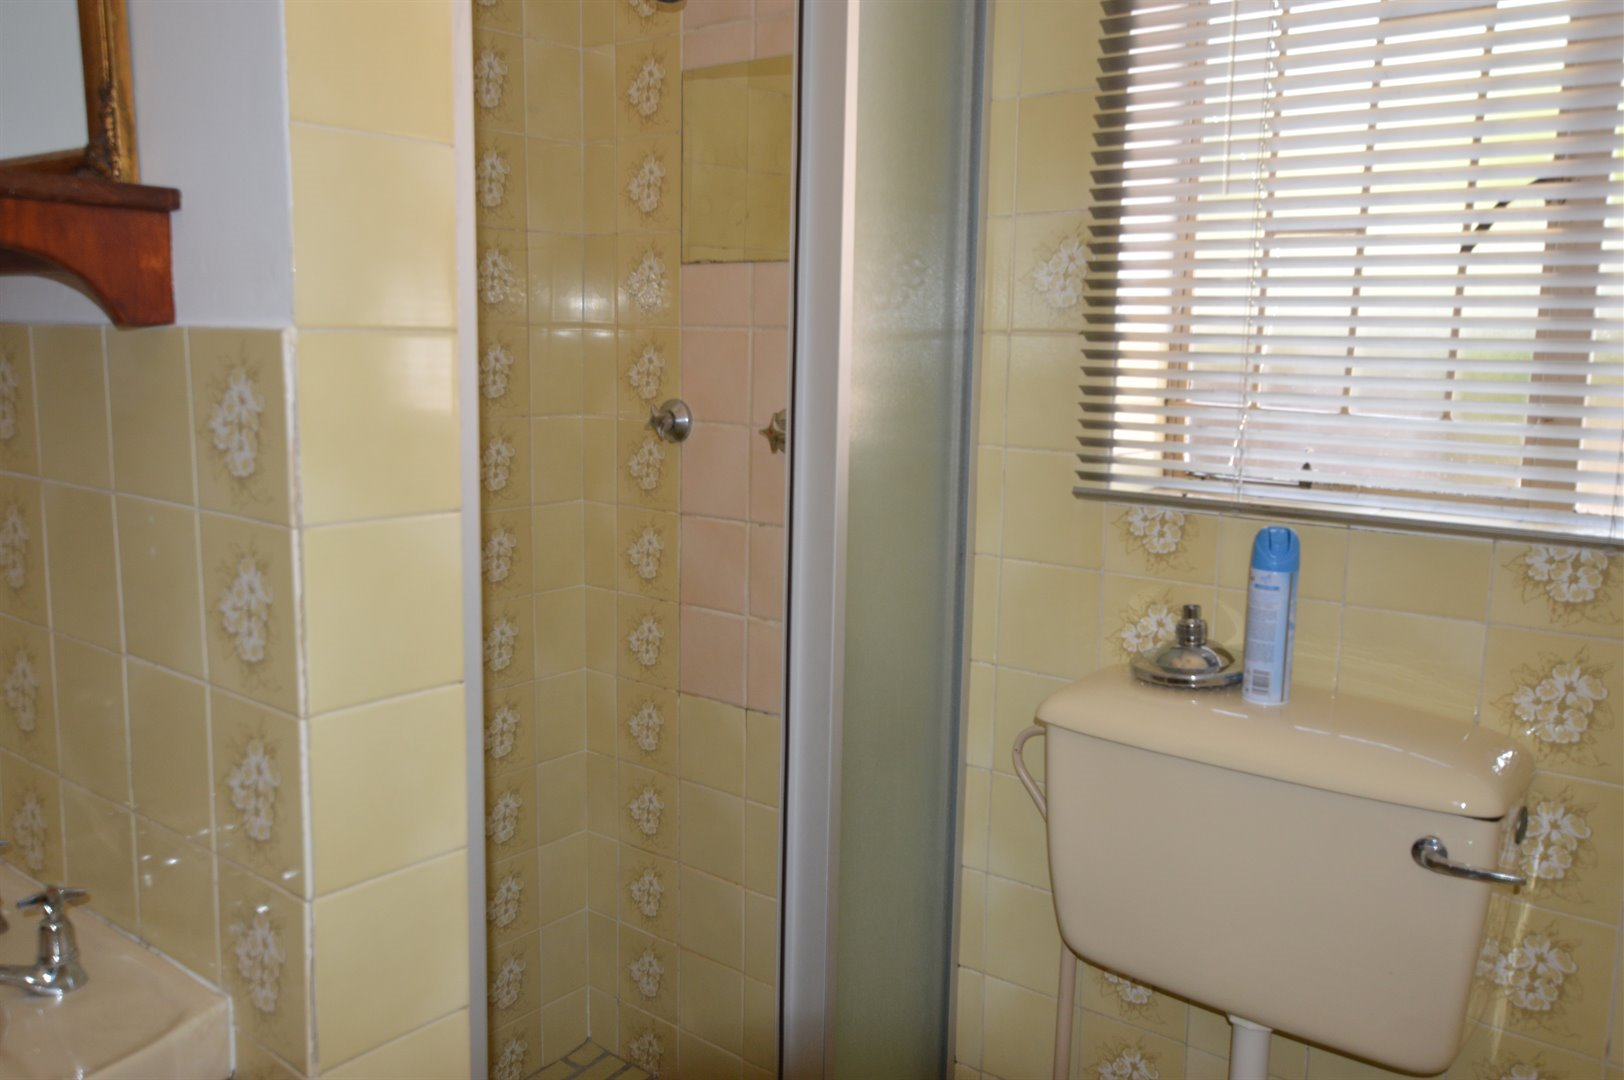 Vanderbijlpark Se 2 property for sale. Ref No: 13623209. Picture no 10